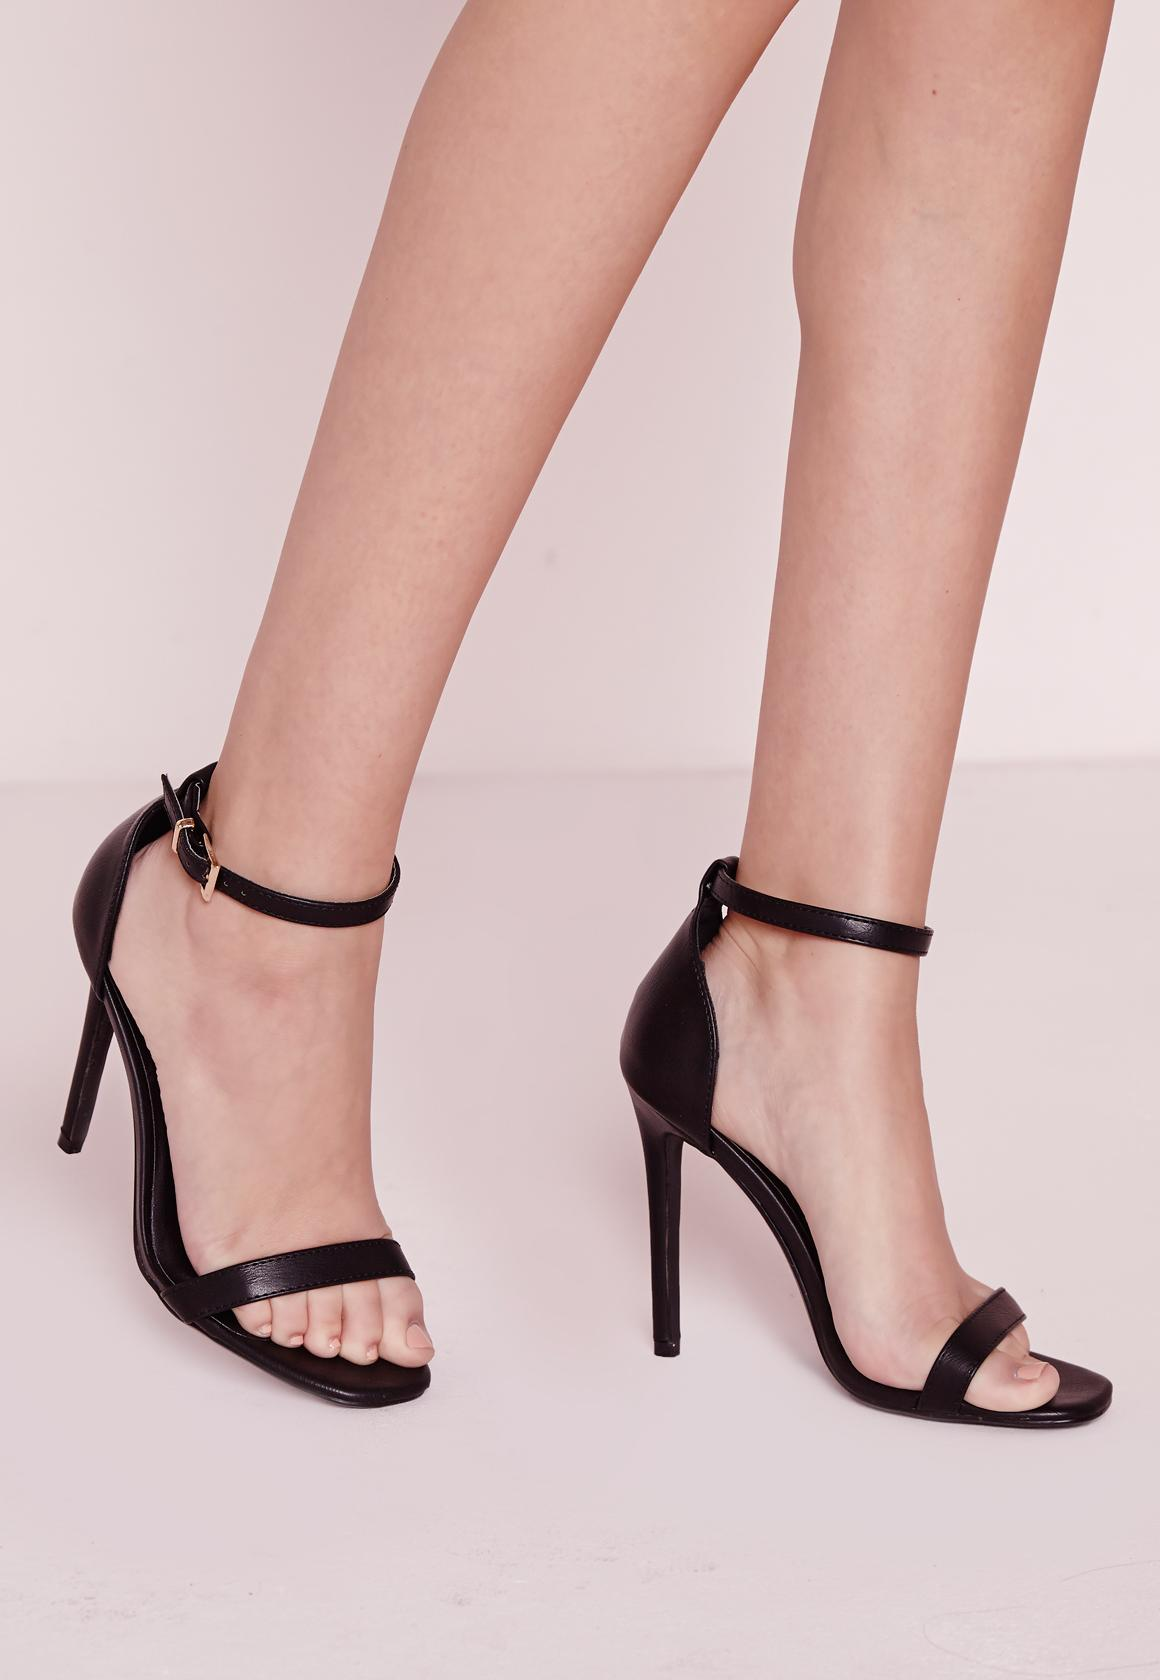 Barely There Strappy Heeled Sandals Black - Shoes - High Heels